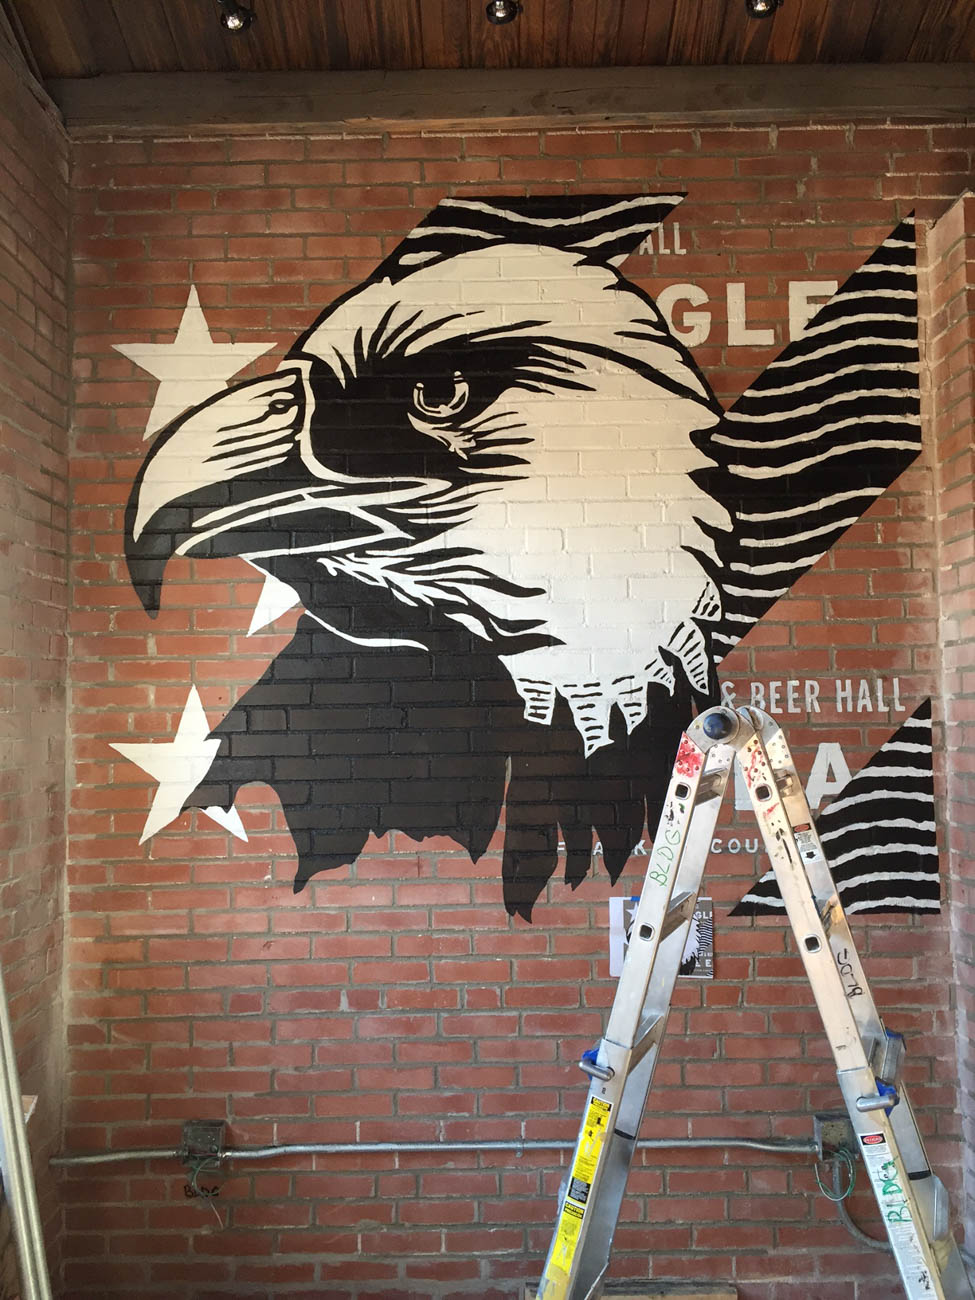 An interior mural at The Eagle in Over-the-Rhine / Image courtesy of BLDG Refuge // Published: 9.24.19